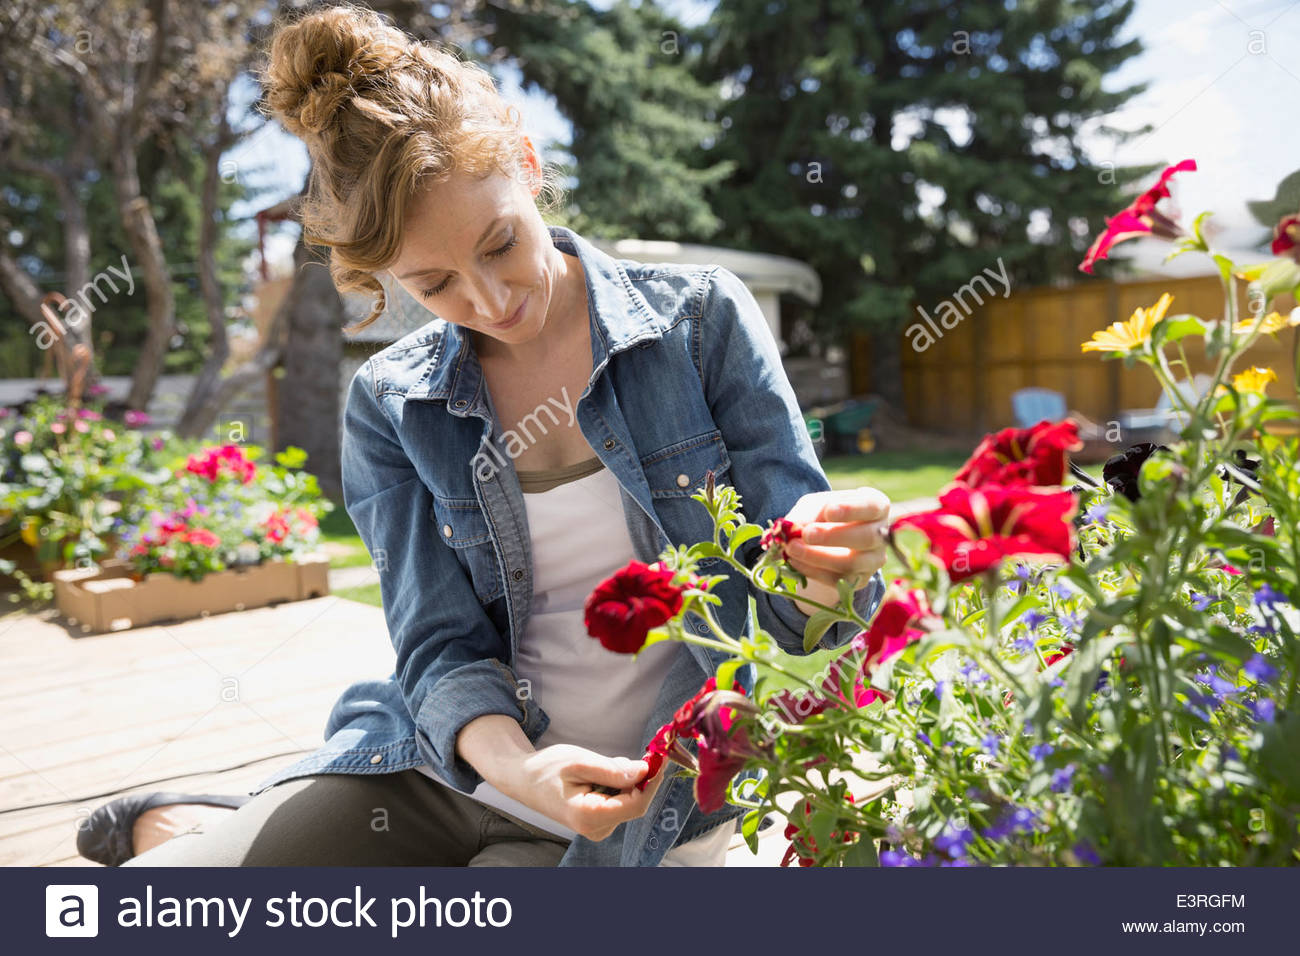 Woman touching flowers in garden - Stock Image